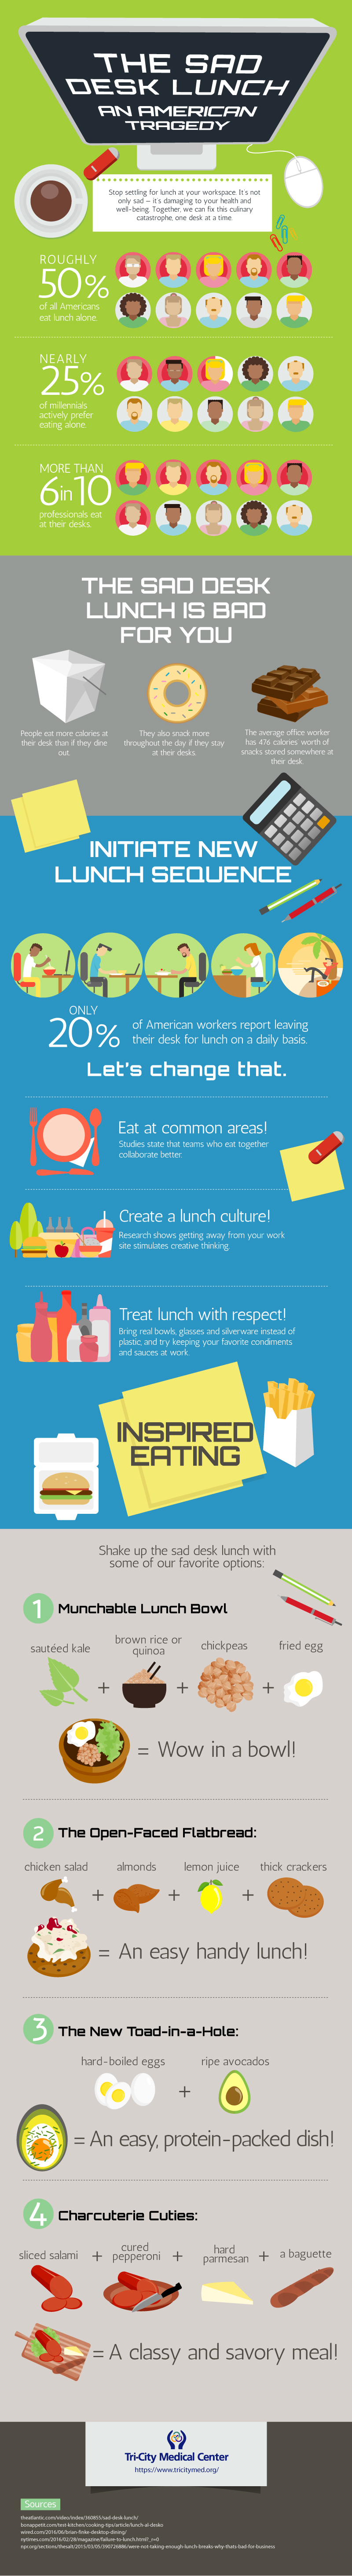 Say No to Sad Desk Lunches - Infographic